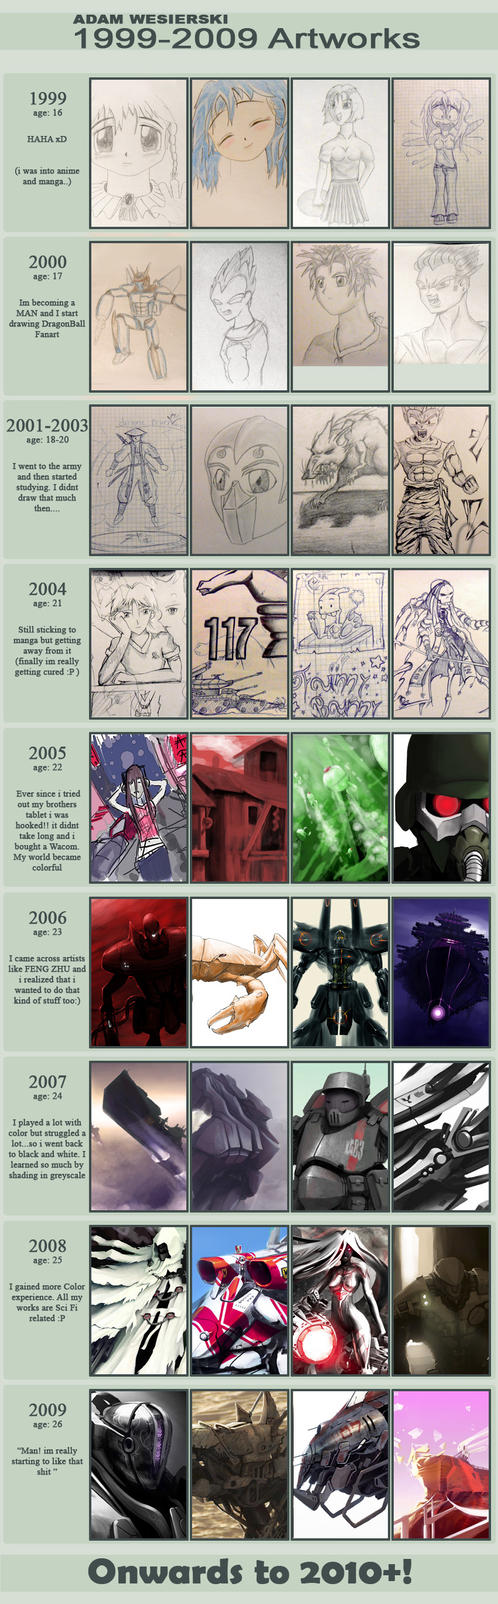 Improvement MEME 1999-2009 by dasAdam